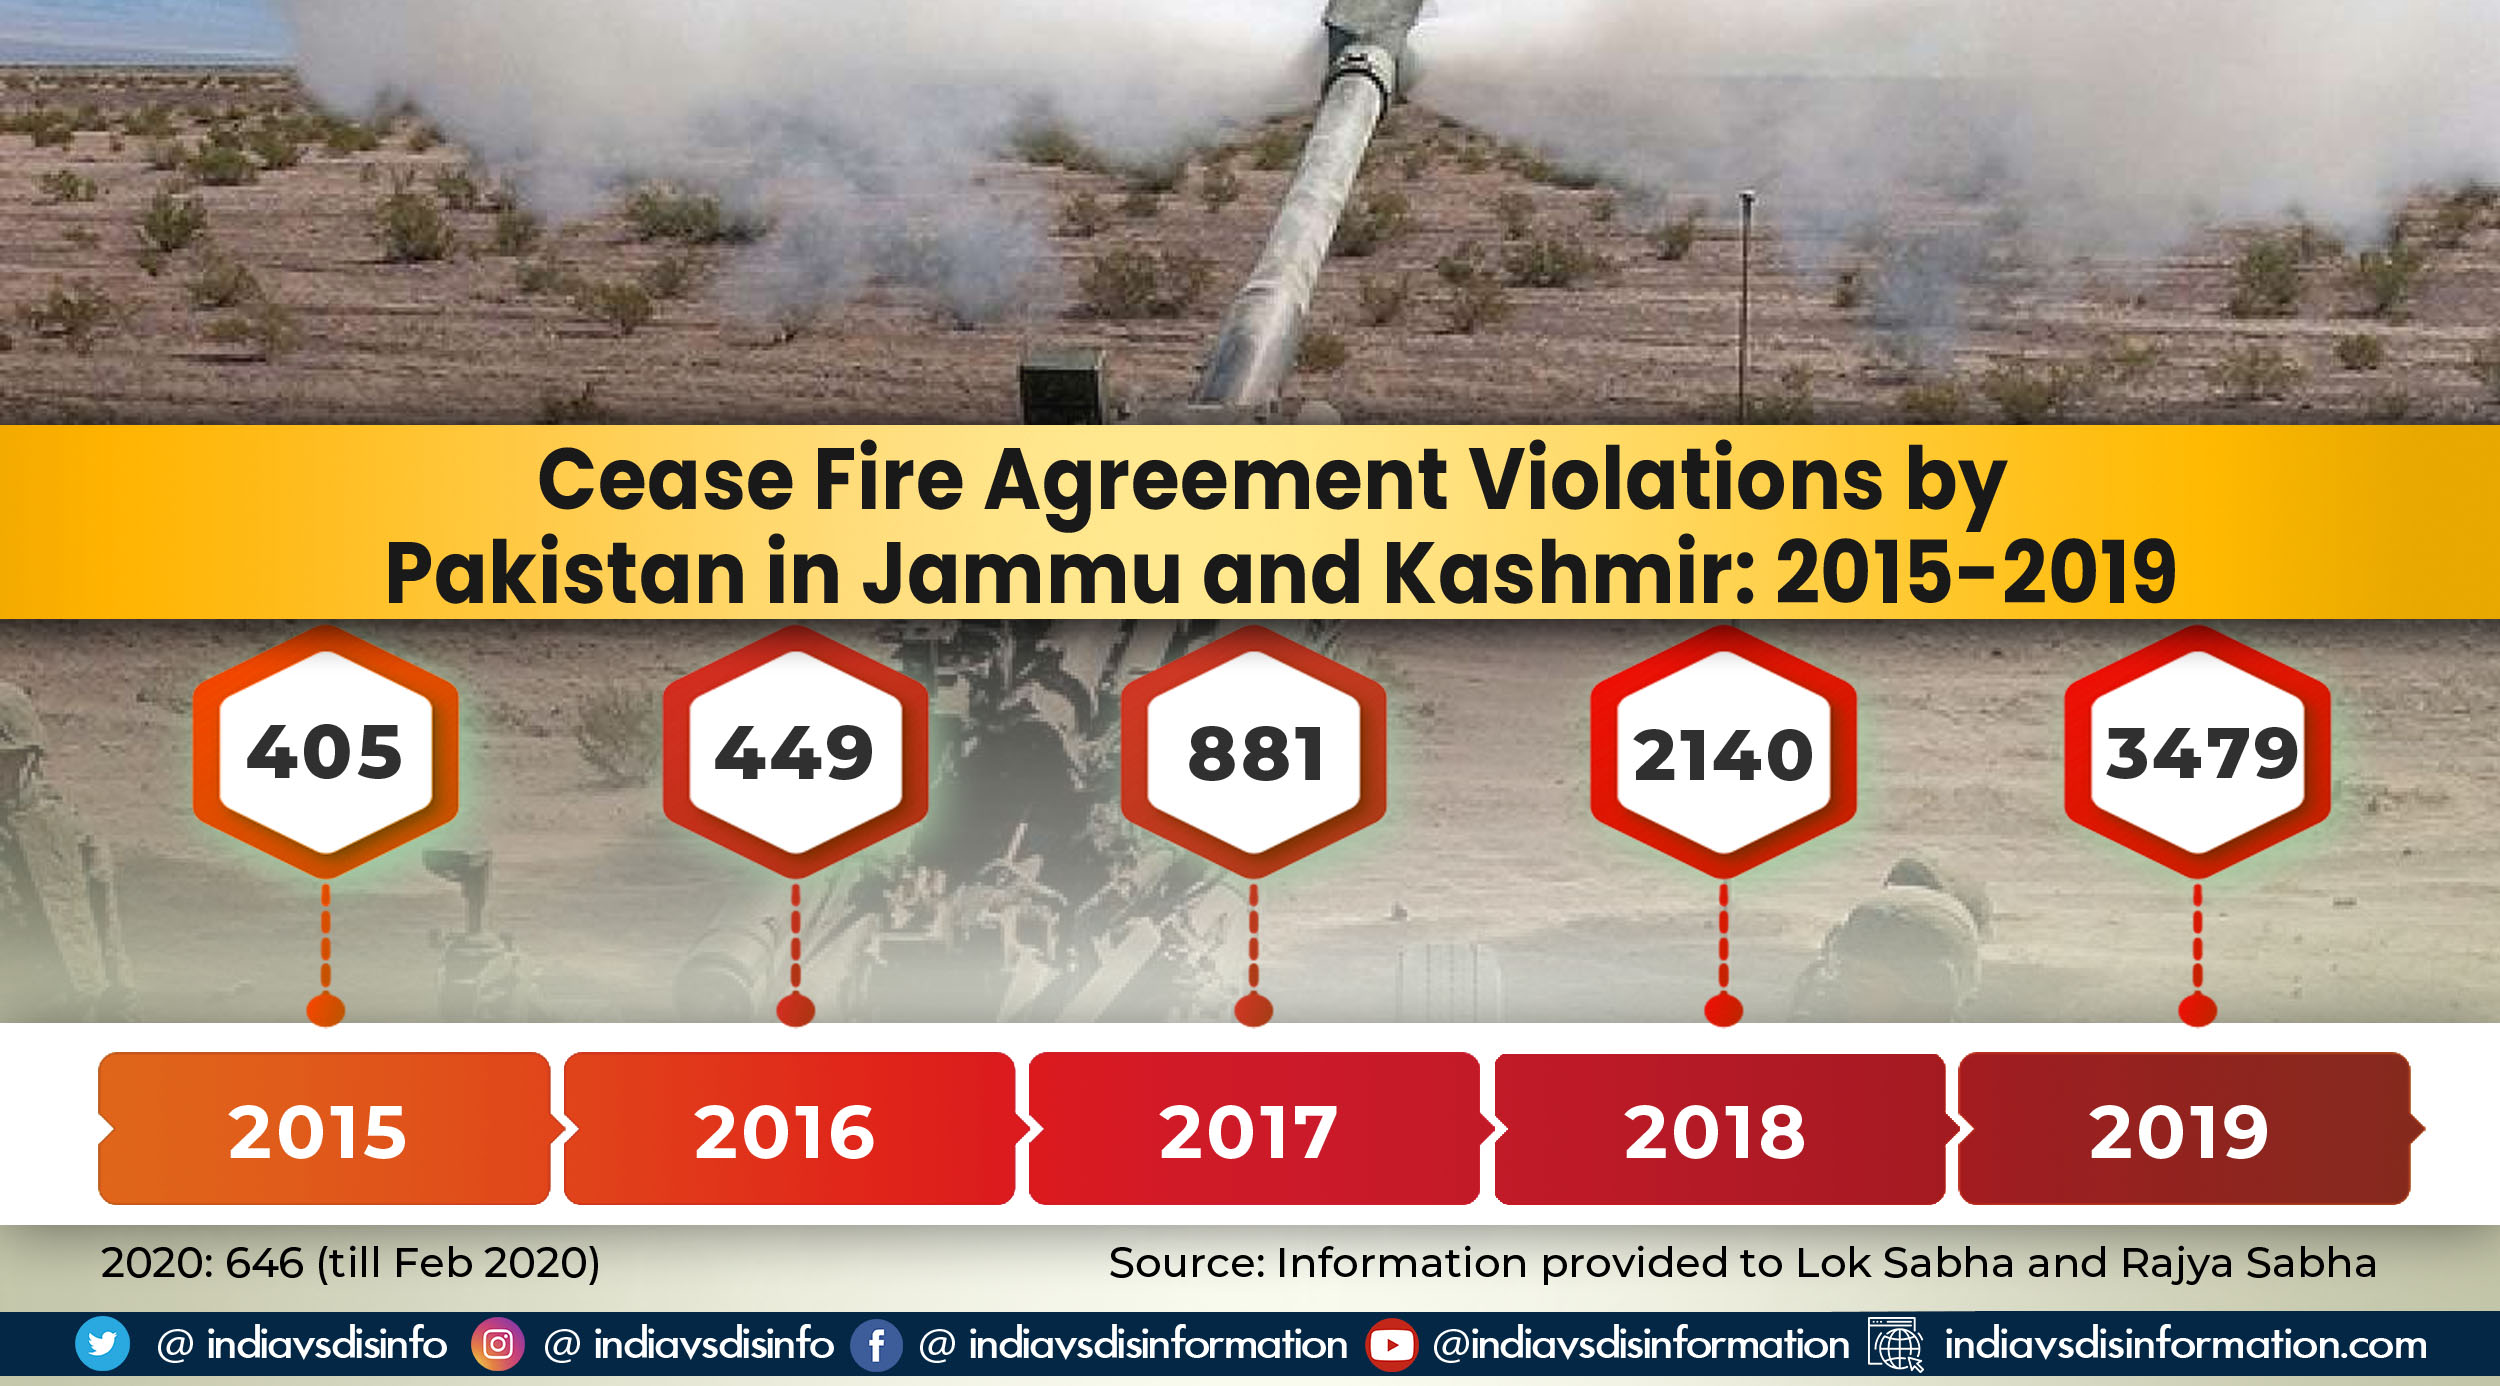 Ceasefire violations and terrorist incidents in Jammu and Kashmir